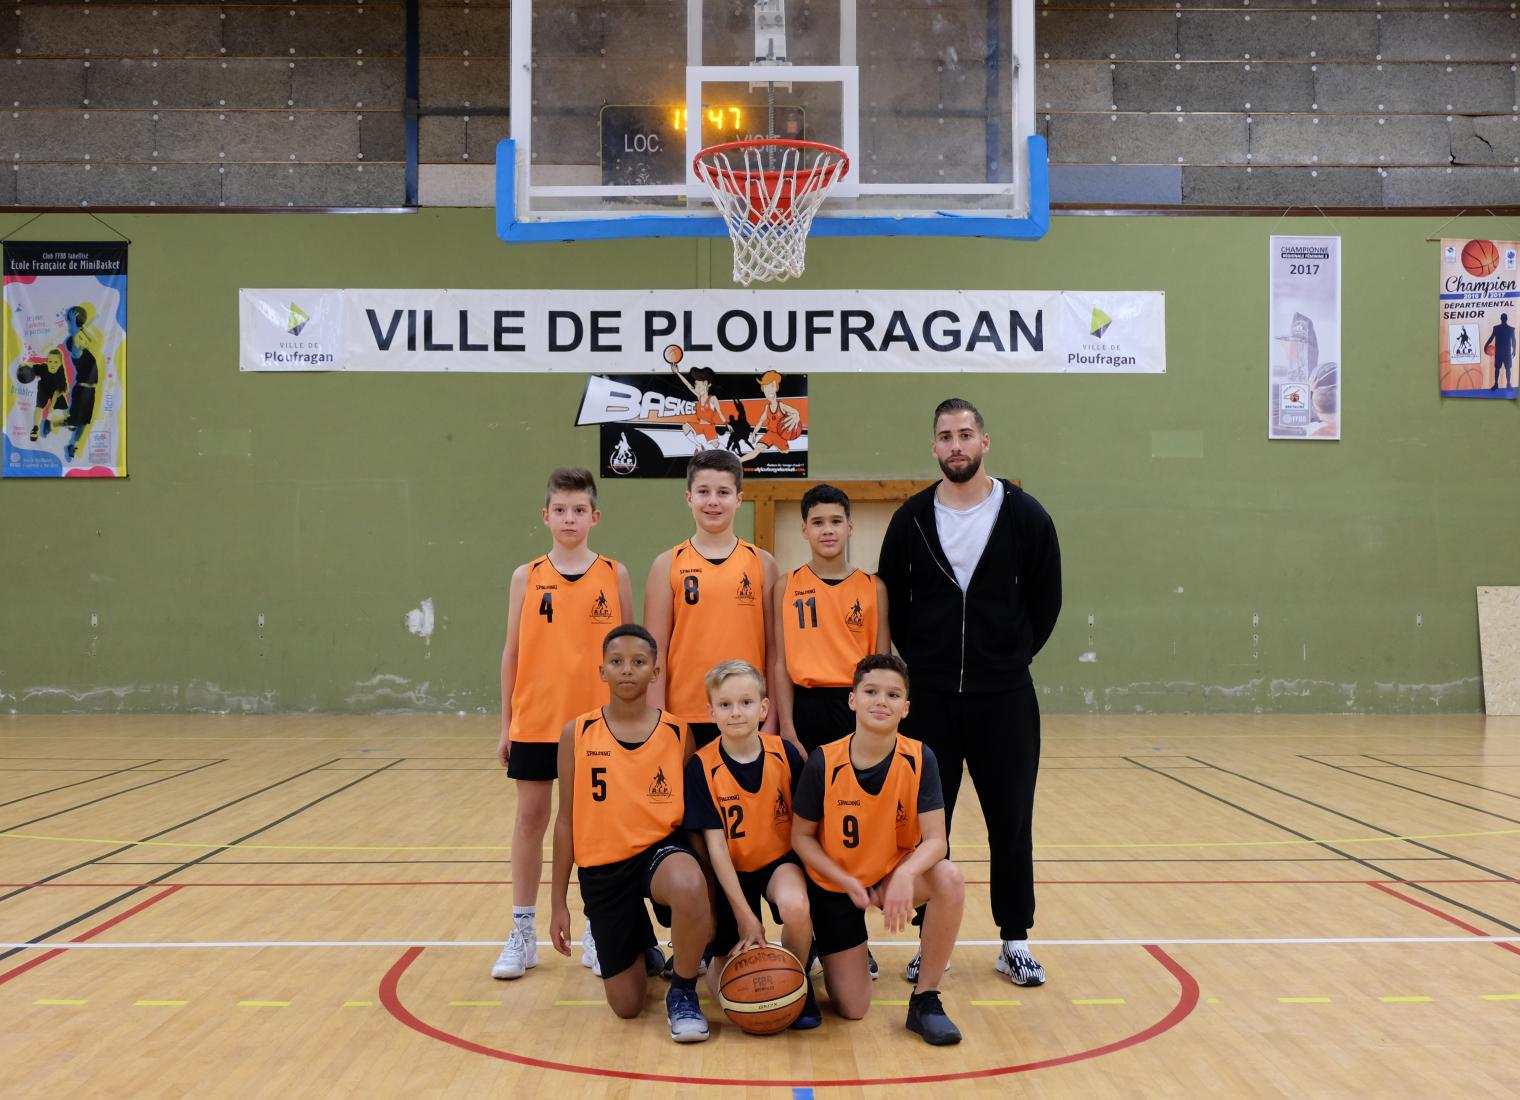 U13 GARS-2 CTC - DEVELOPPEMENT - AL PLOUFRAGAN BASKET-BALL